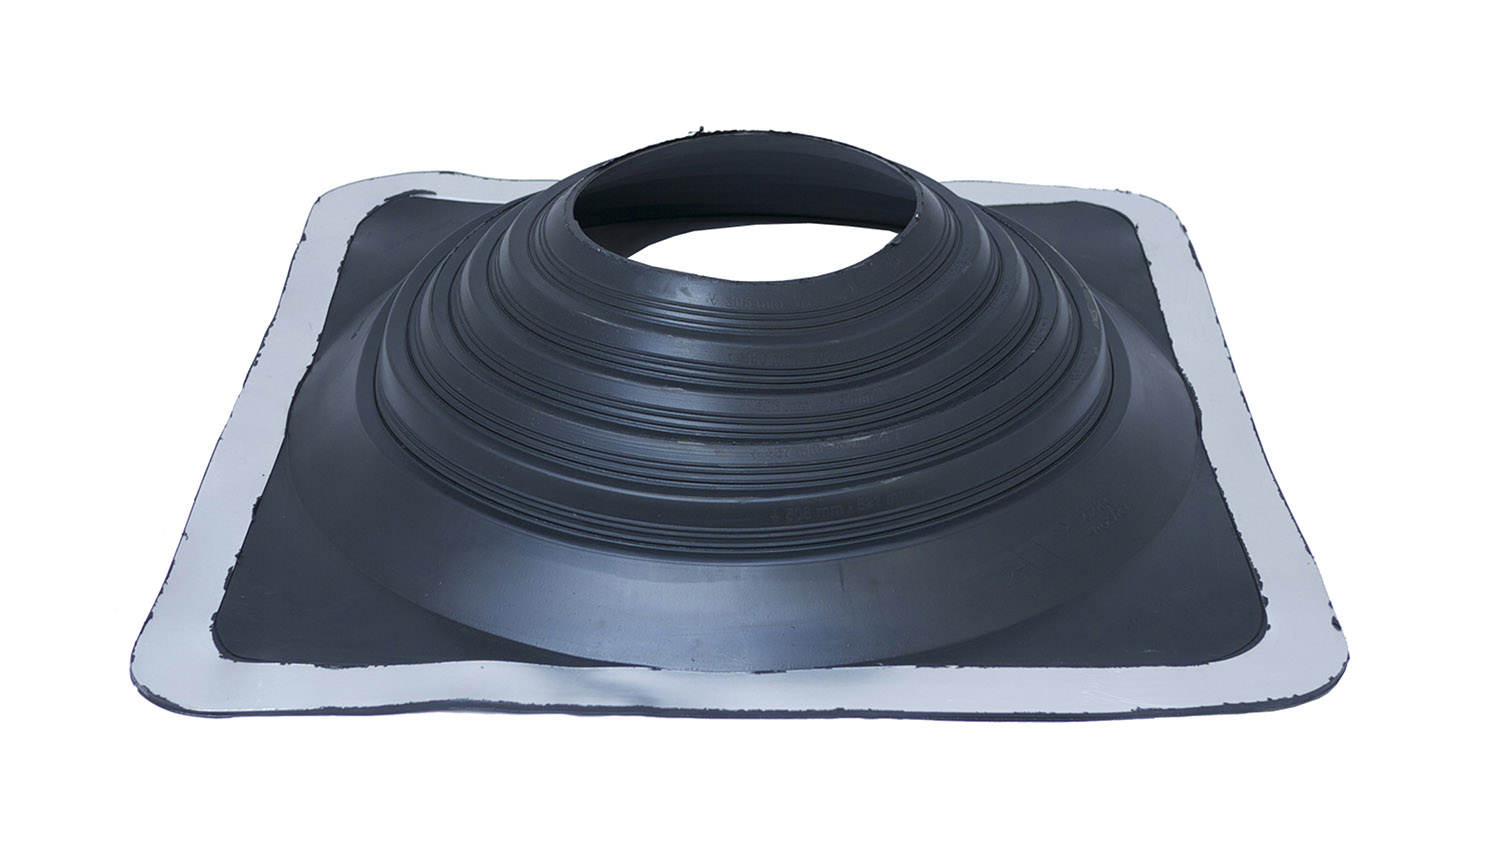 Masterflash Rubber Flashing - Black - No. 8 - 178mm To 330mm Diameter